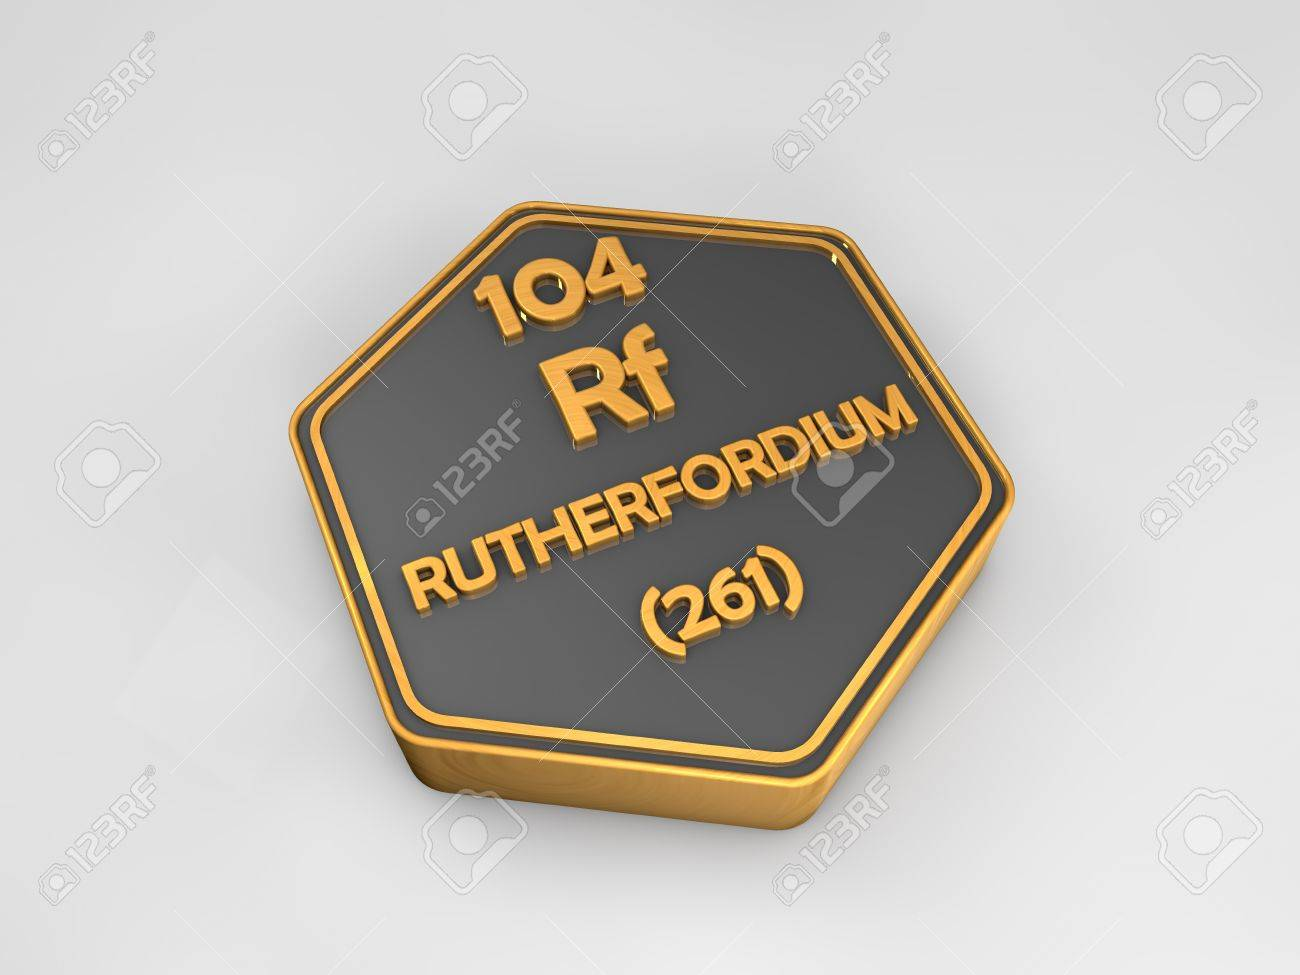 Rutherfordium rf chemical element periodic table hexagonal rutherfordium rf chemical element periodic table hexagonal shape 3d render stock photo 82719185 gamestrikefo Image collections